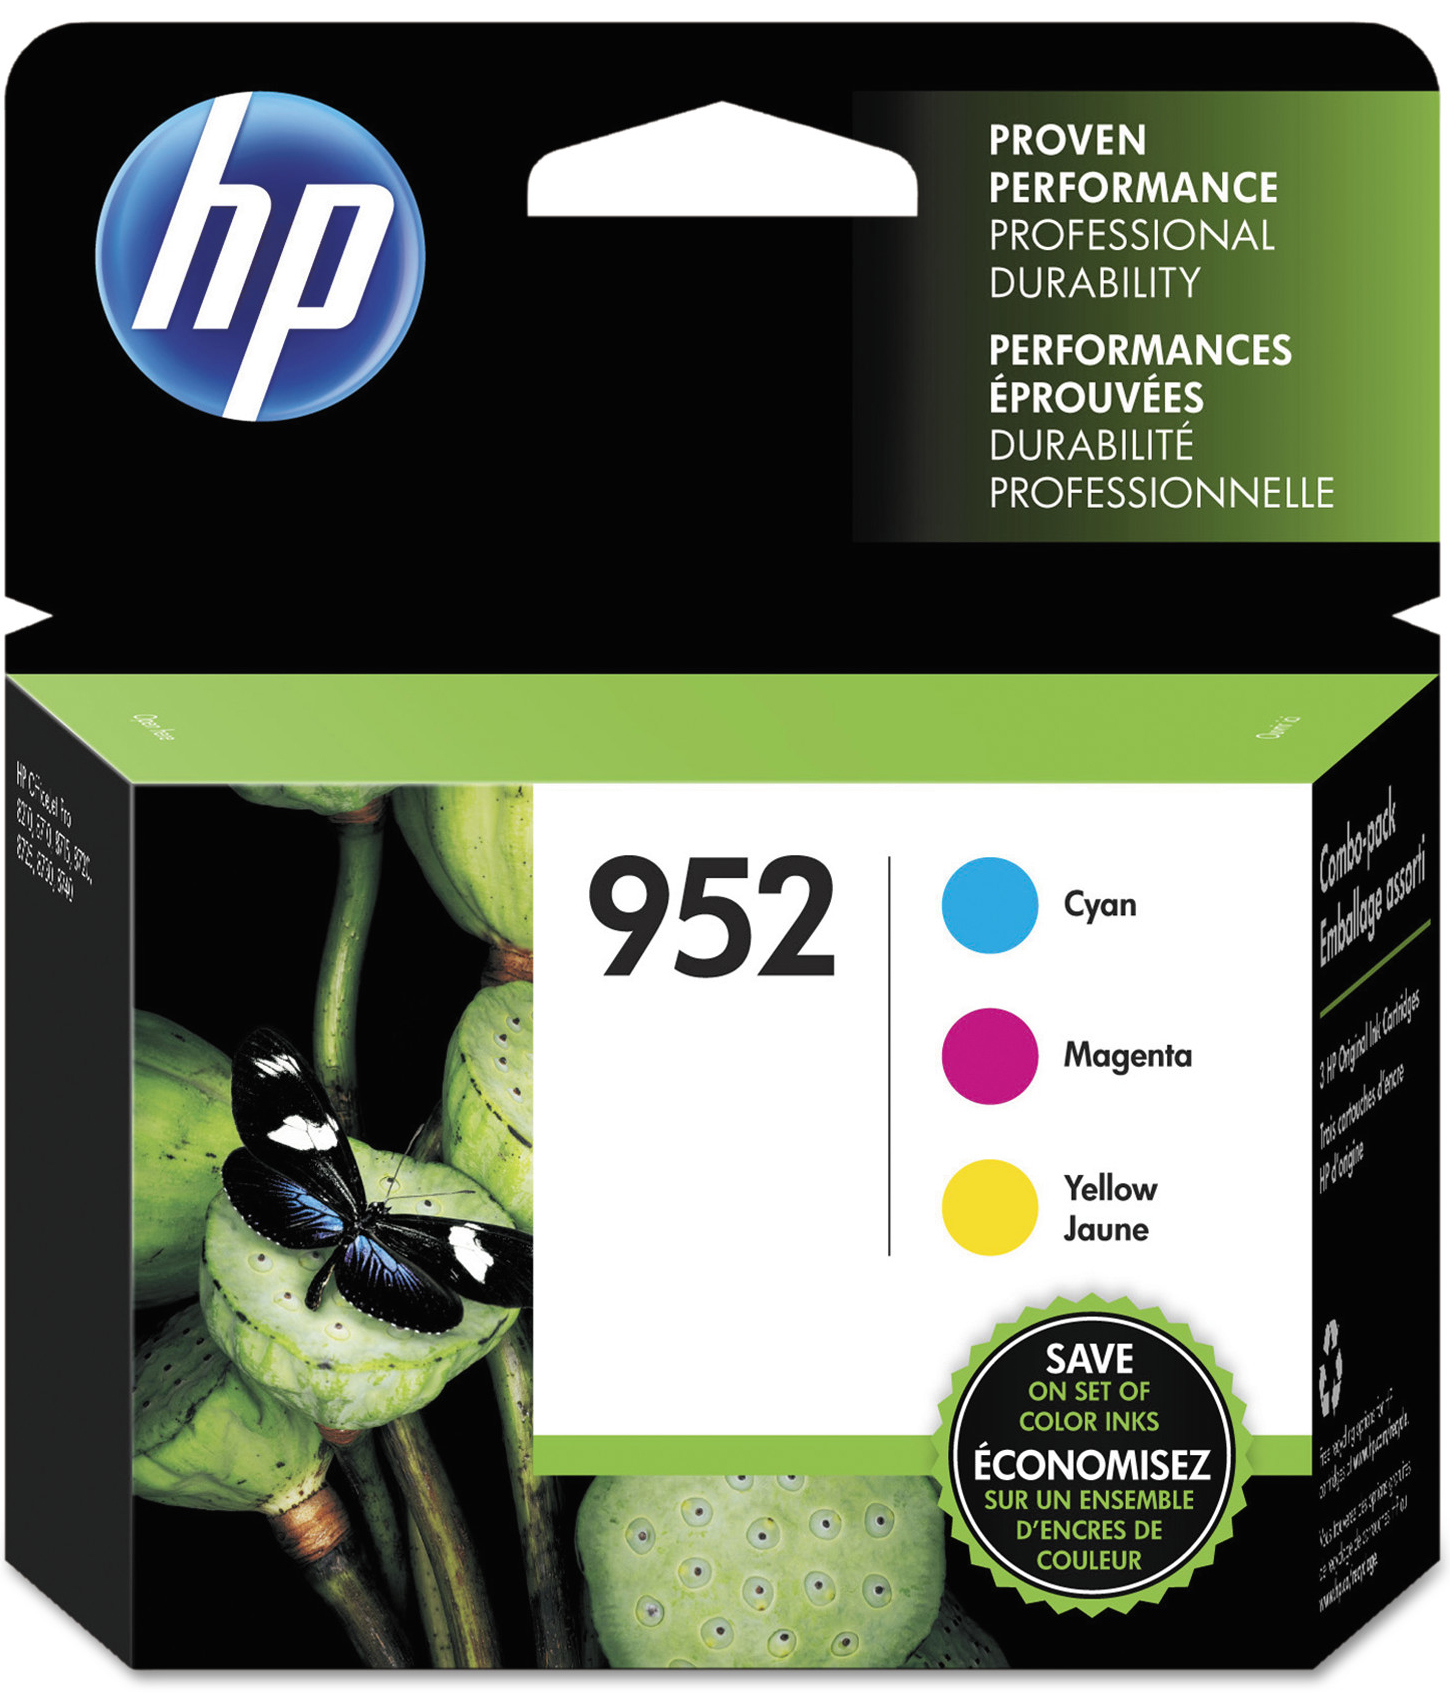 HP 952 Cyan, Magenta & Yellow ink cartridges, 3-pack (N9K27AN) by HP